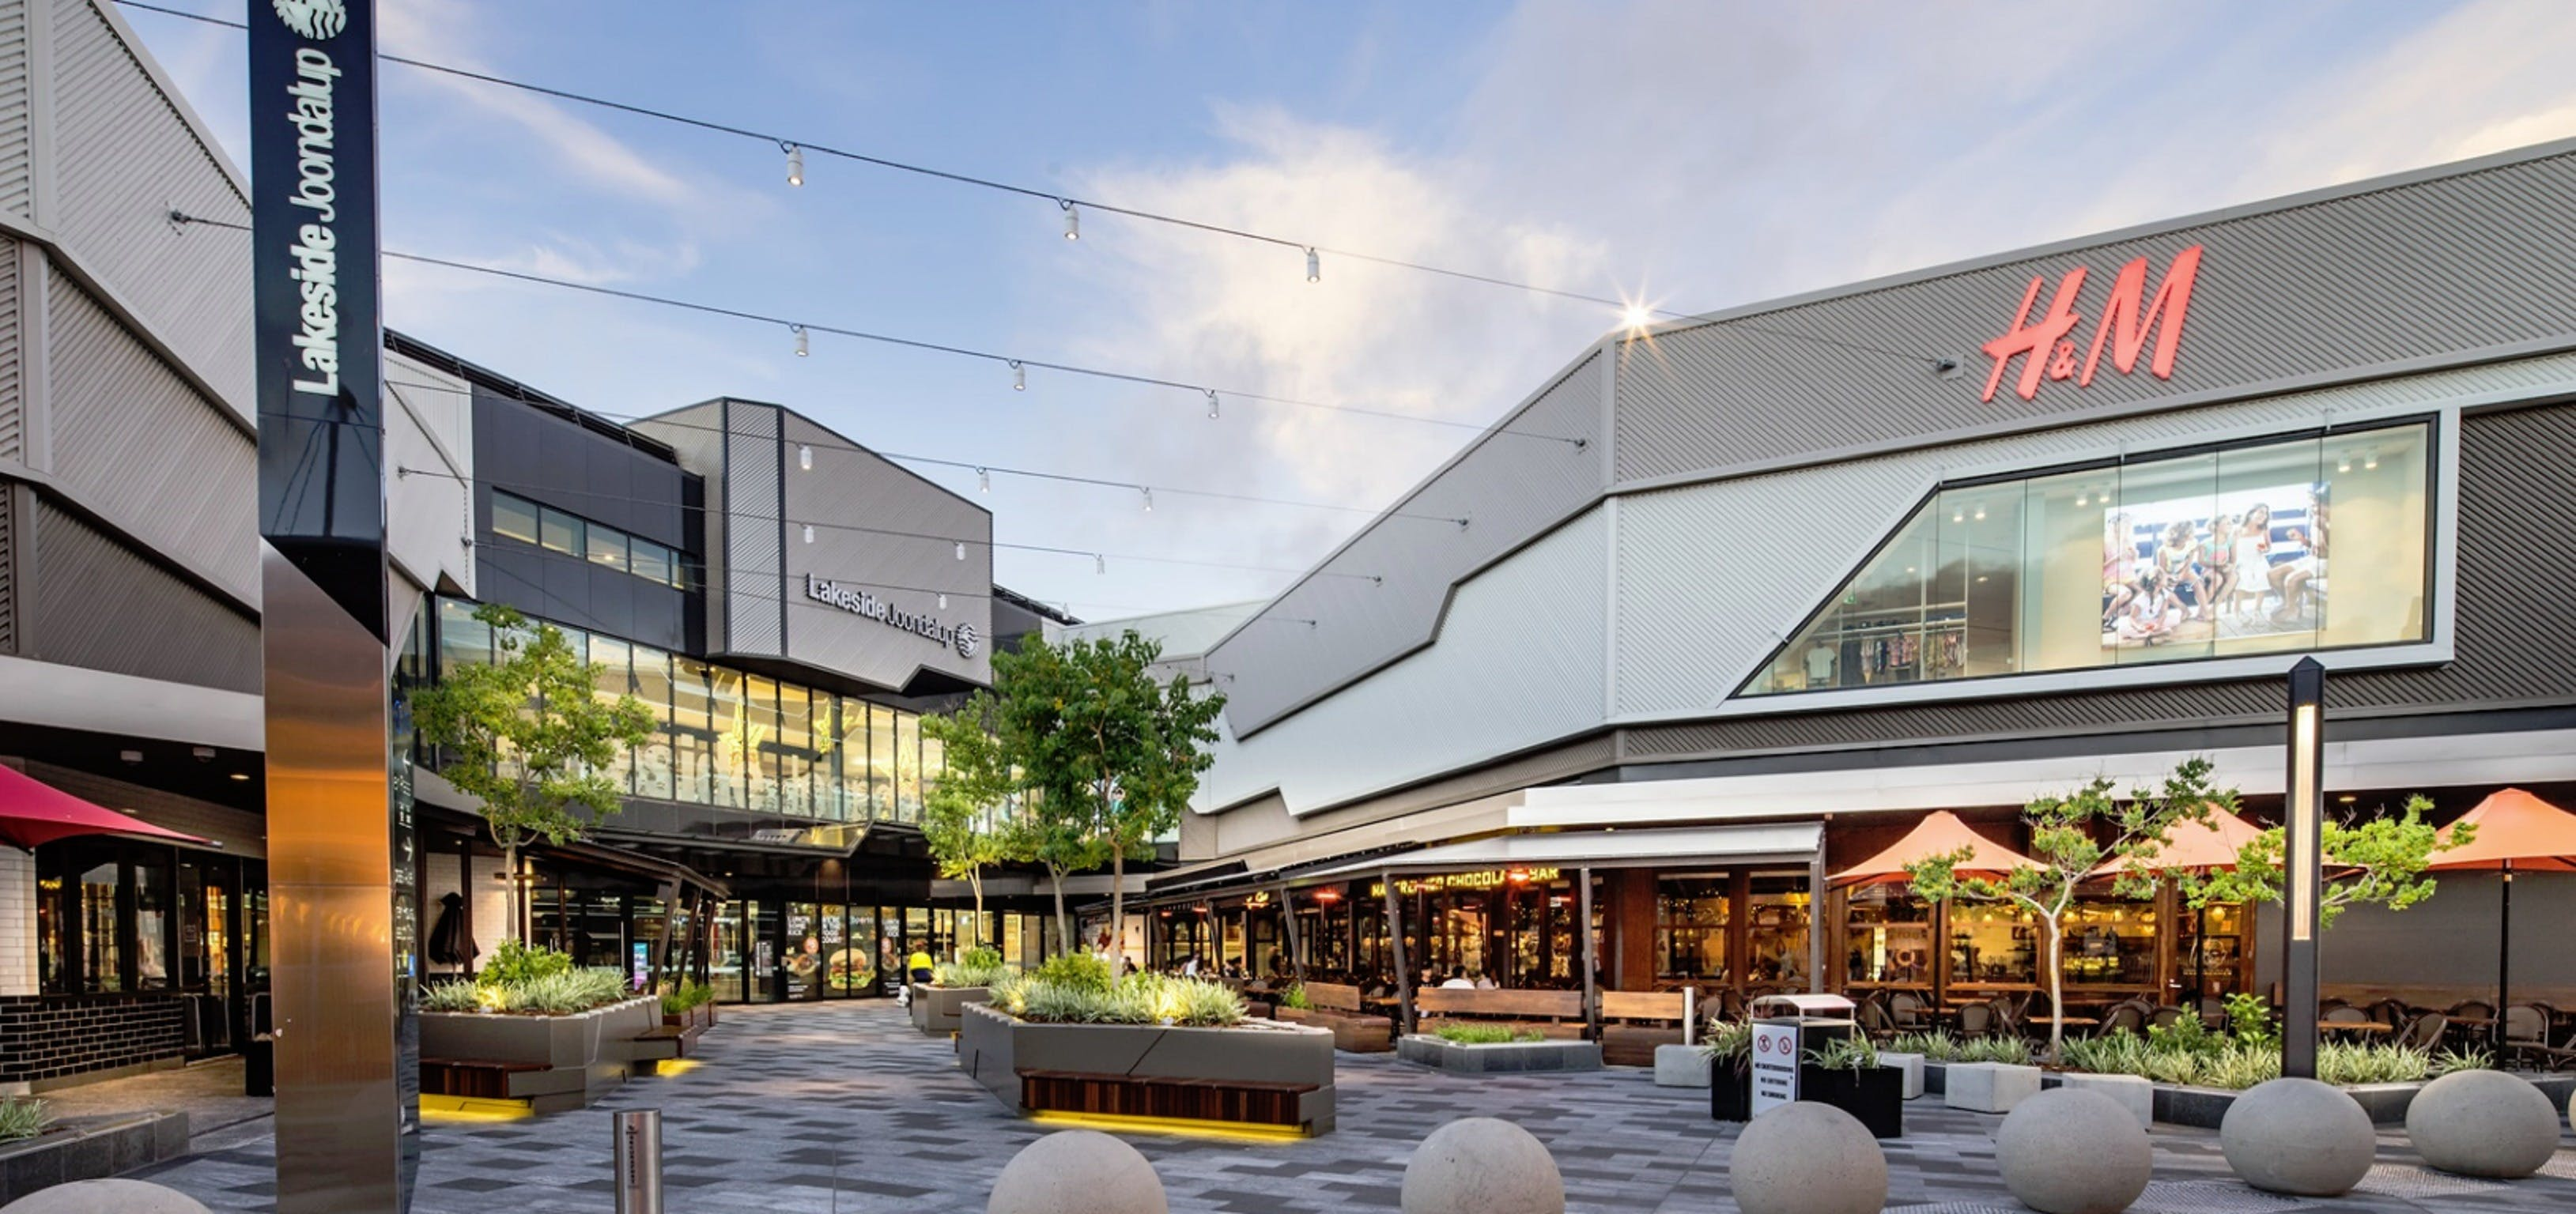 Lakeside Joondalup Shopping Centre - VIC Tourism